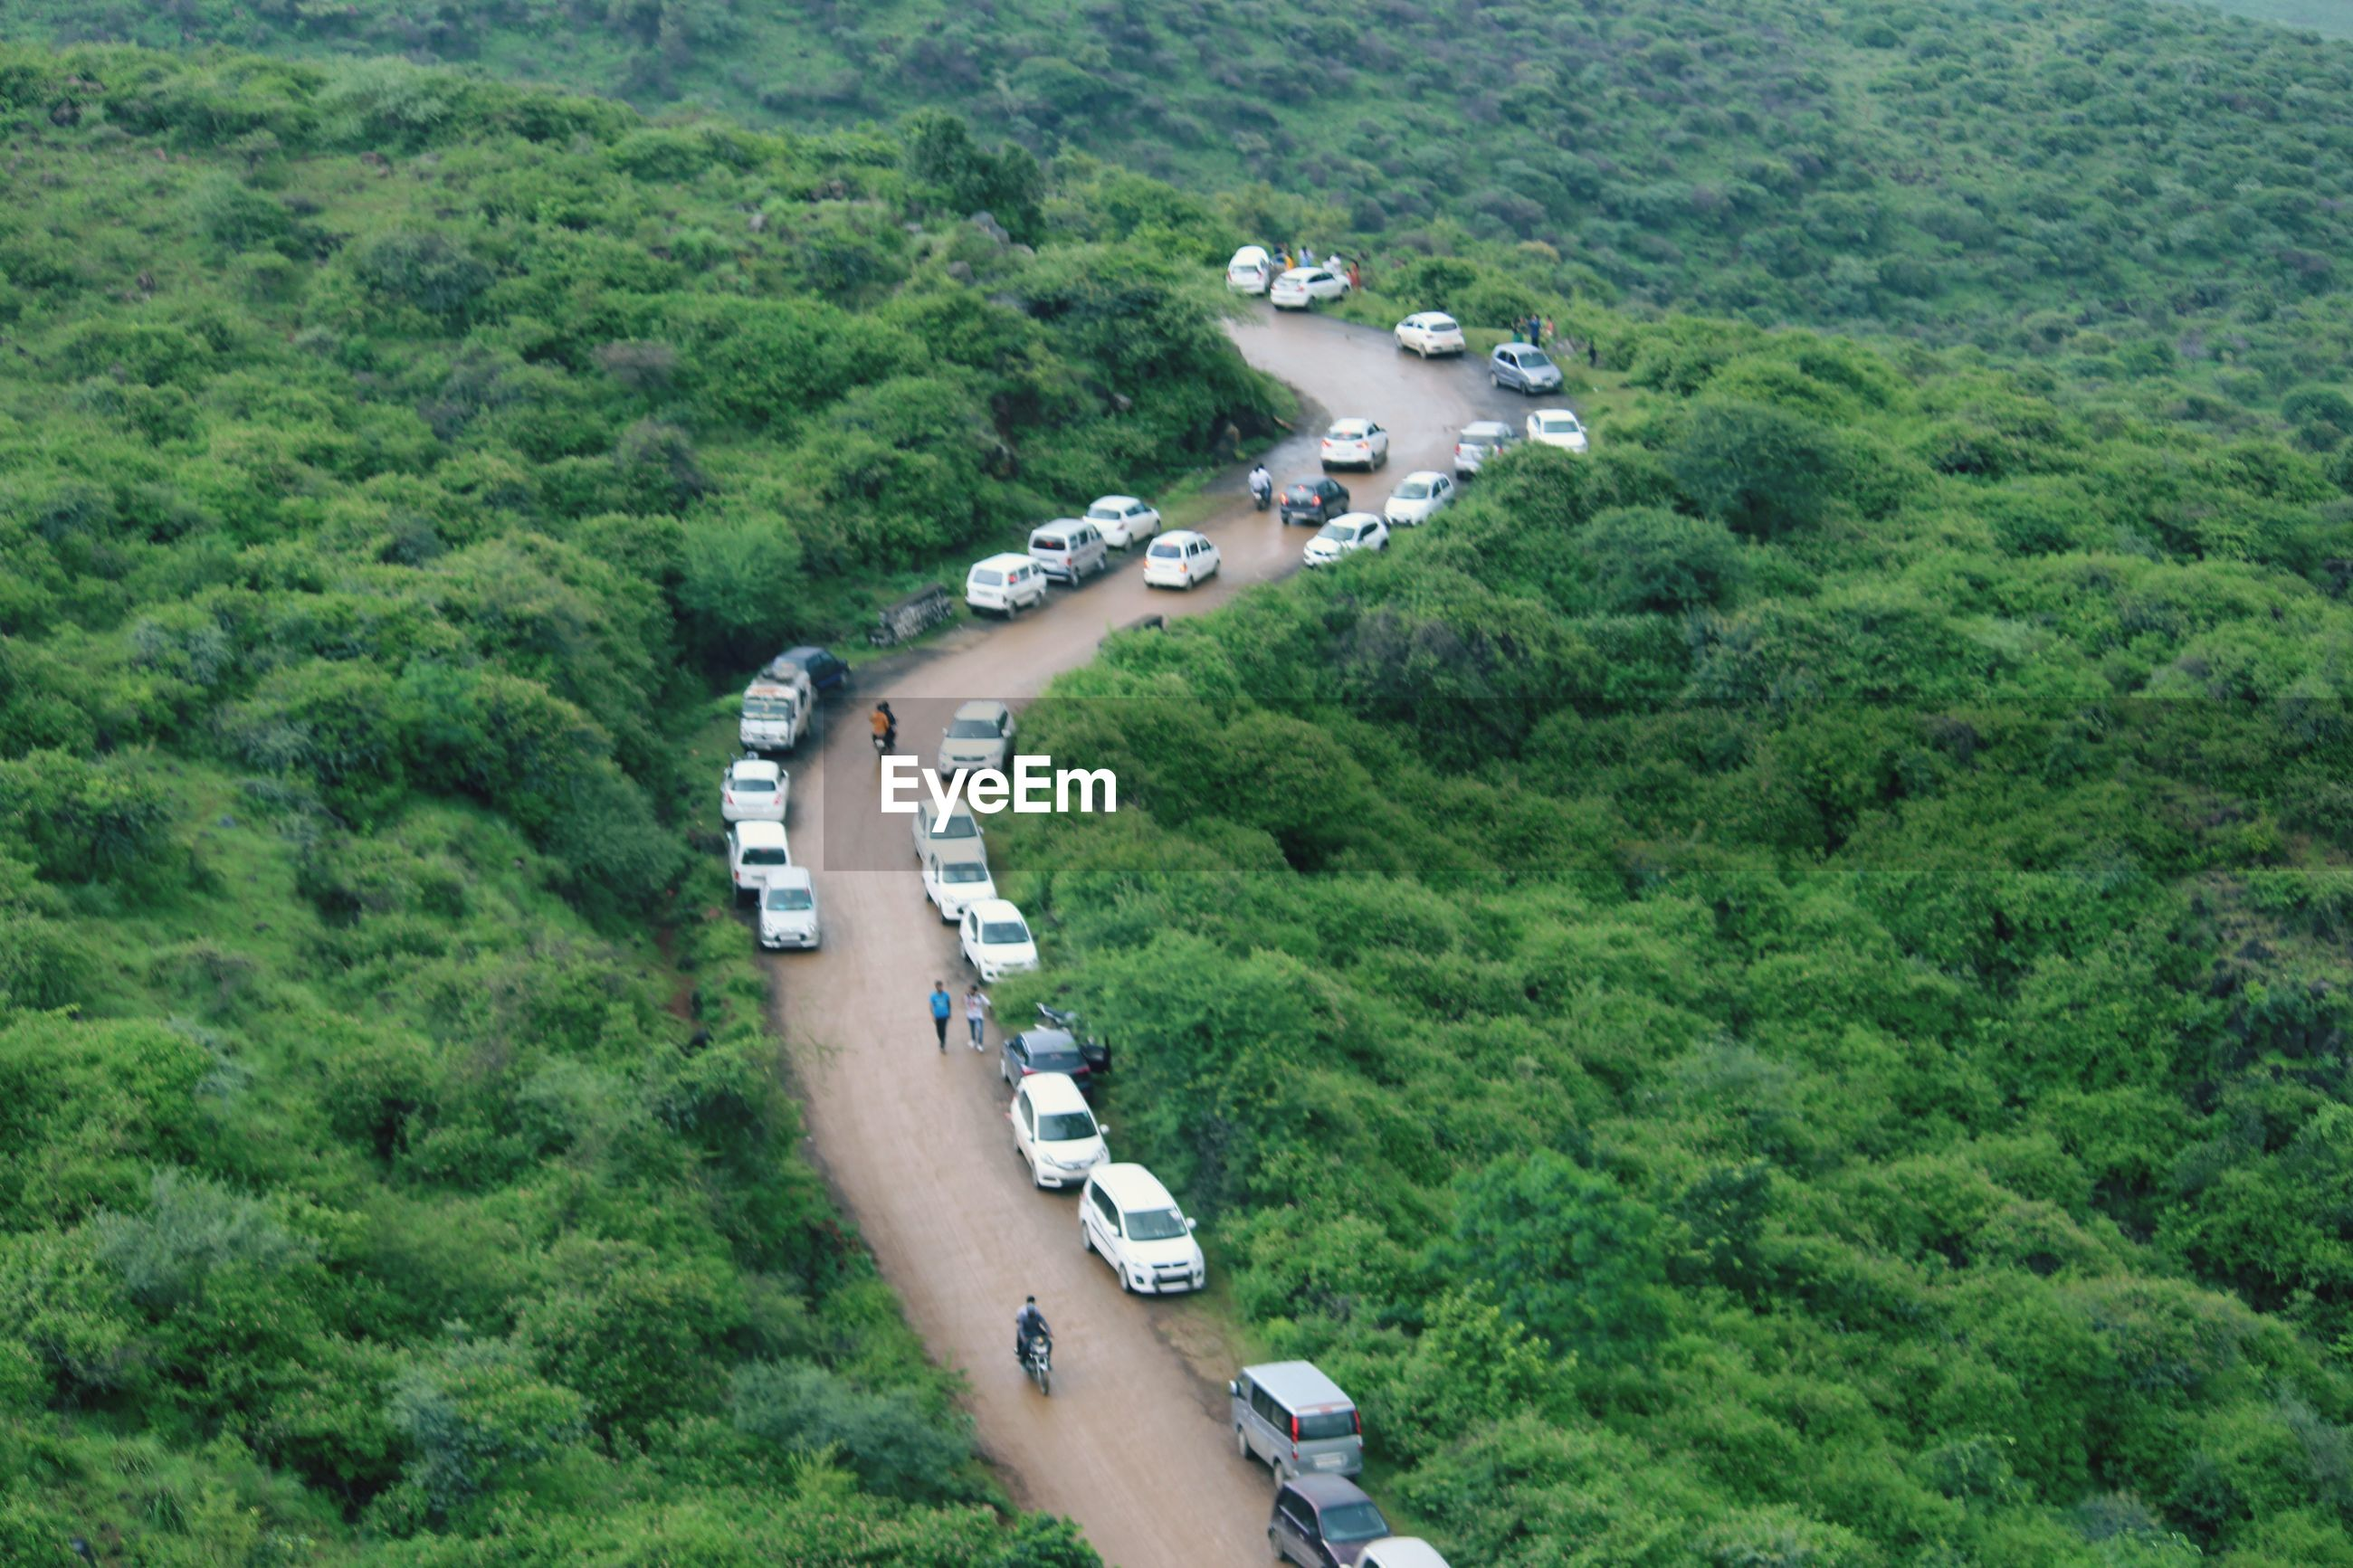 HIGH ANGLE VIEW OF VEHICLES ON ROAD AMIDST TREES